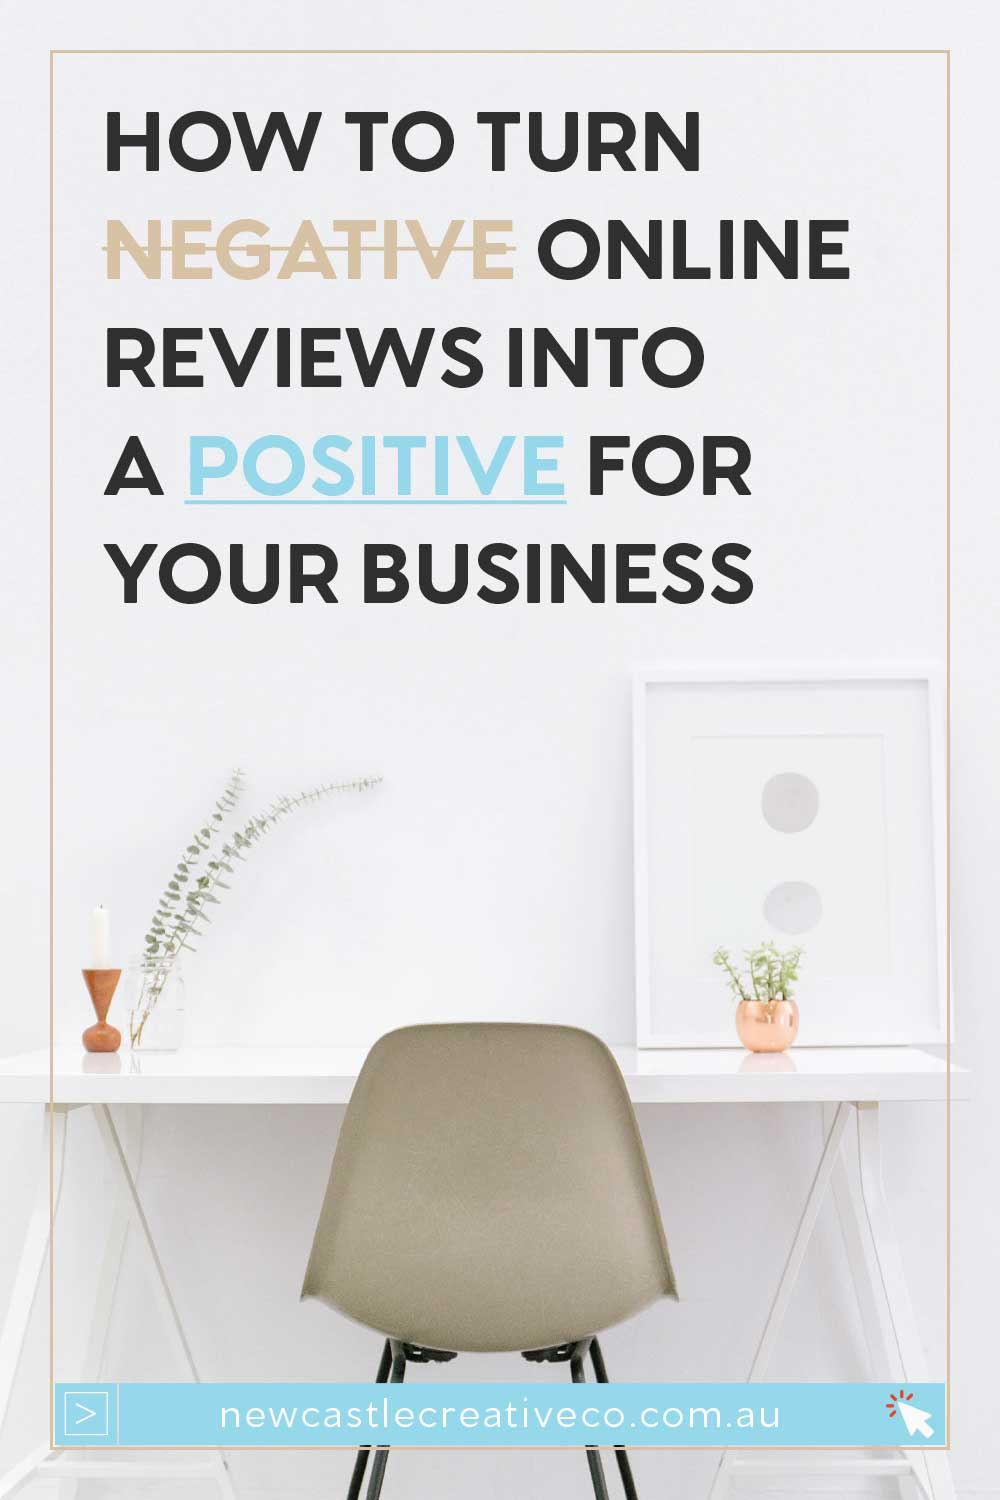 How to turn negative online reviews into a positive for your business   Newcastle Creative Co